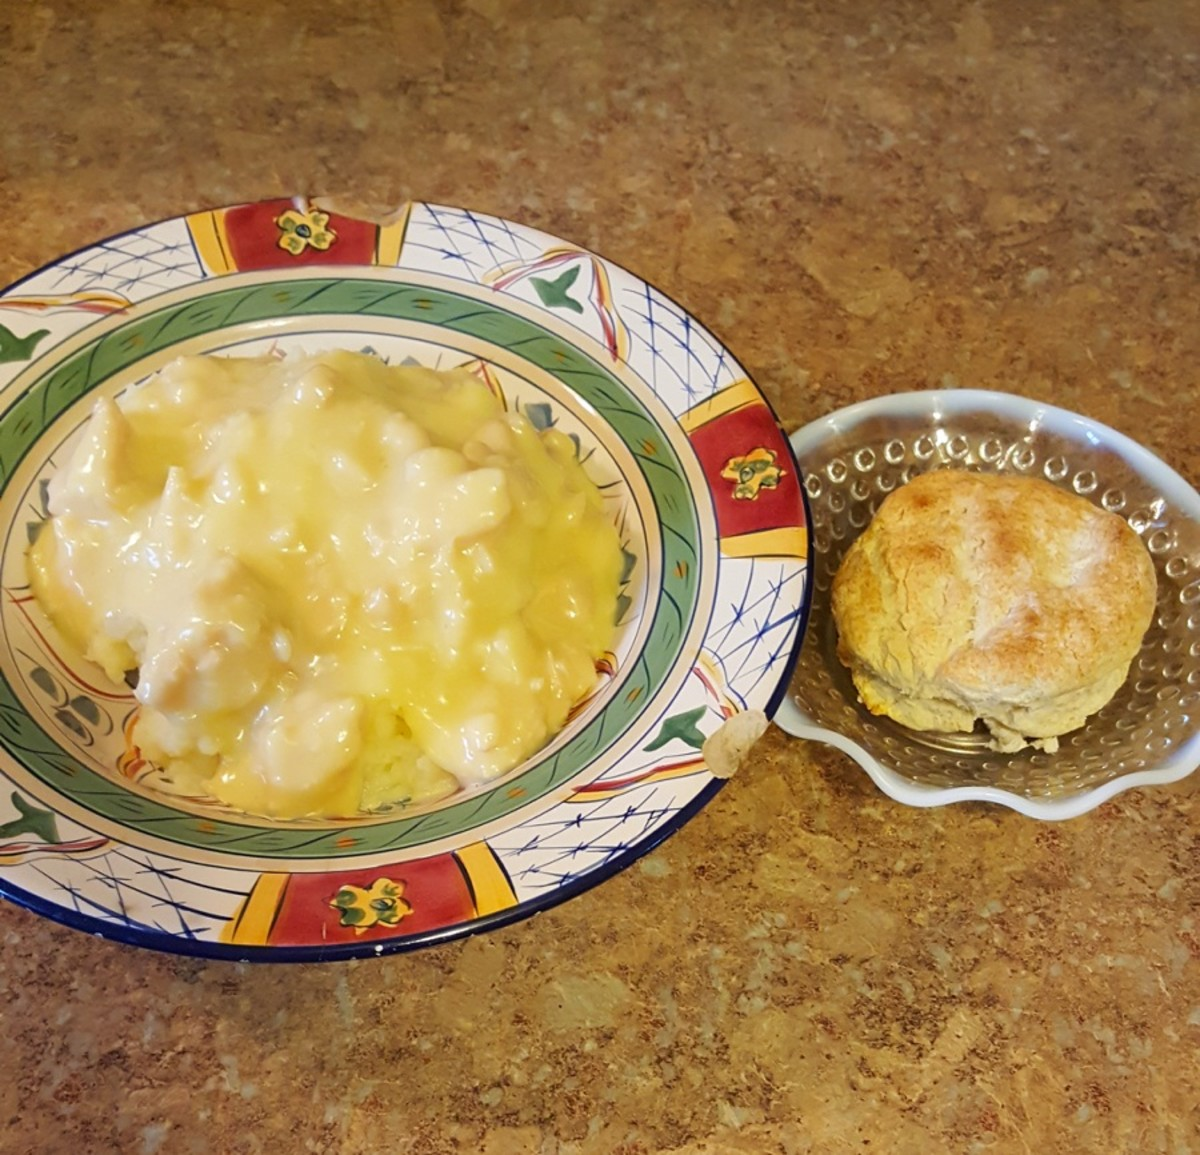 Chicken gravy over mashed potatoes, served with a biscuit.